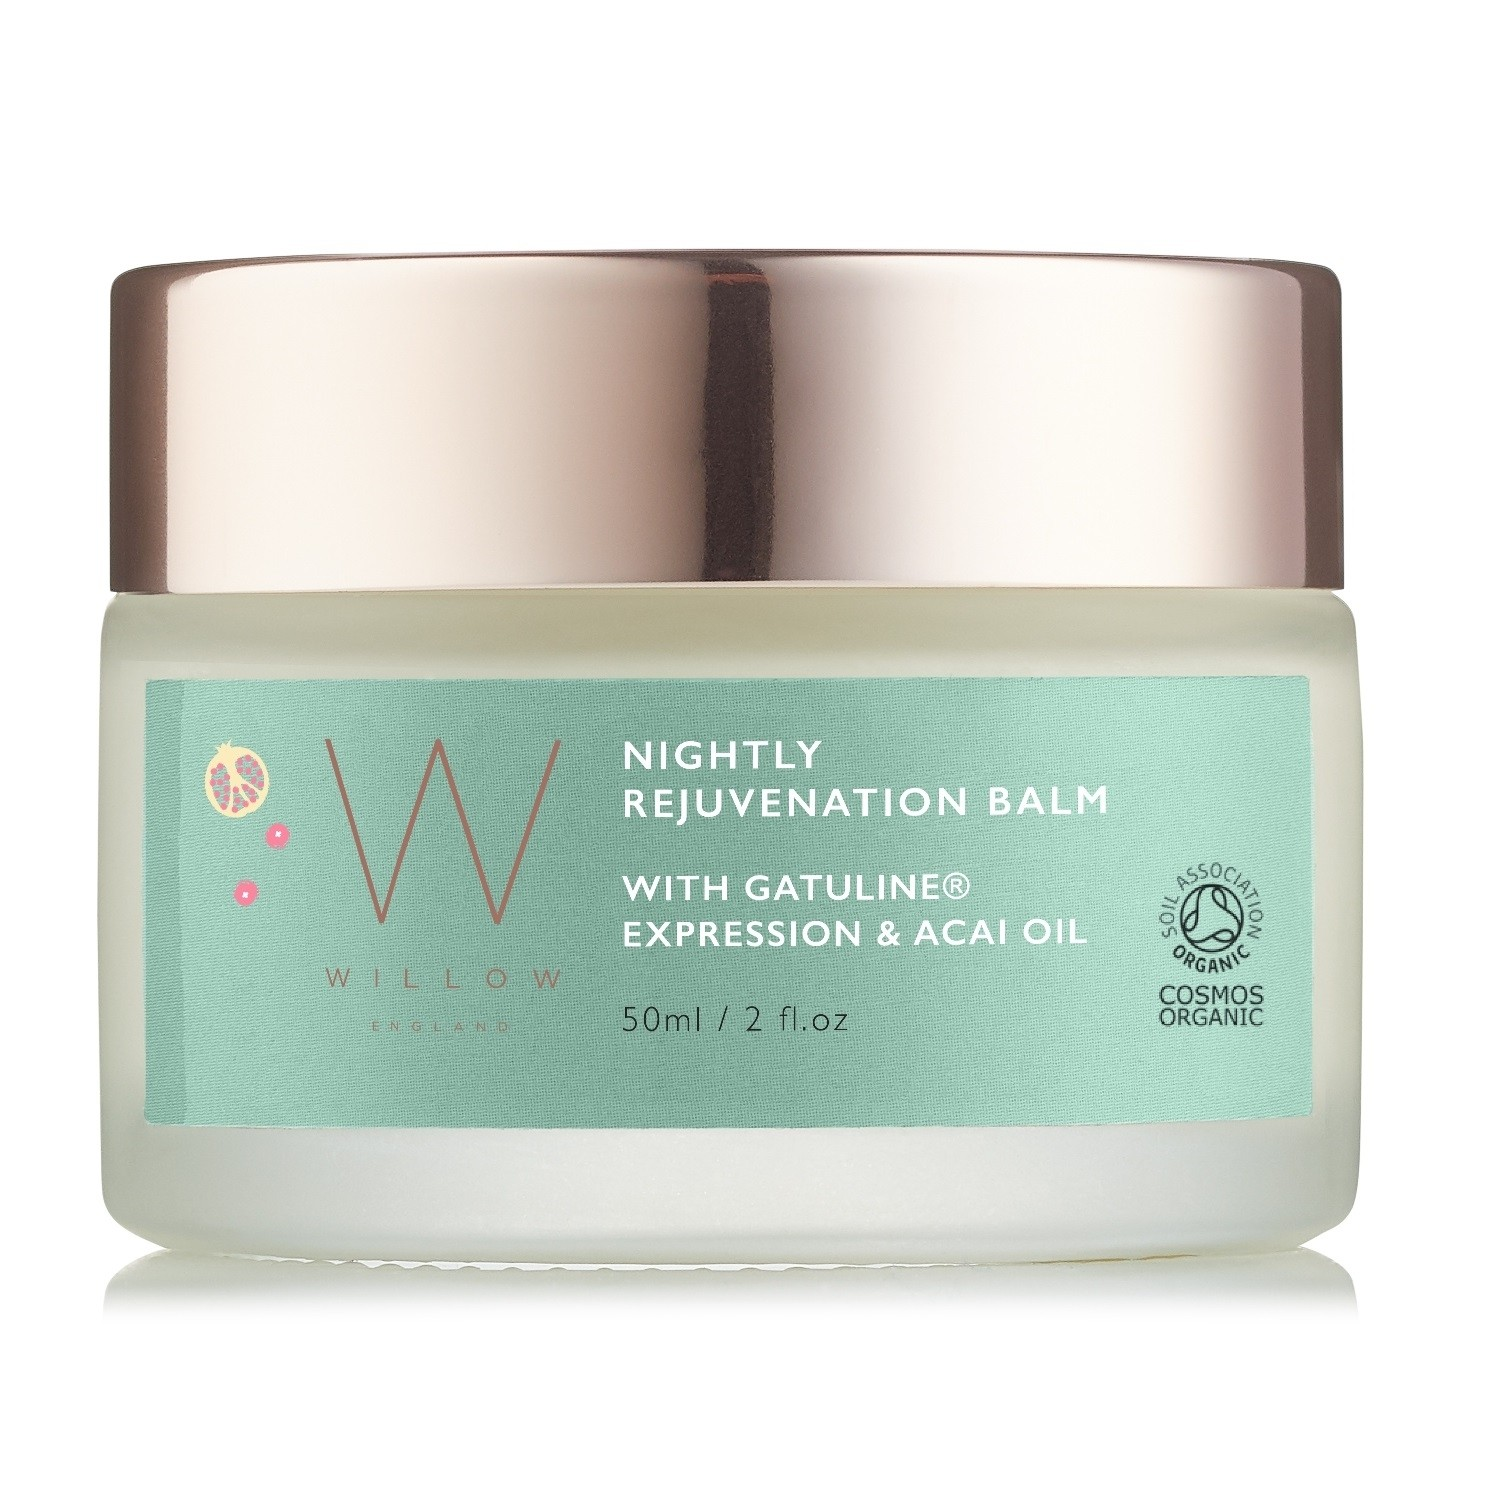 Nightly Rejuvenation Balm with Gatuline Expression and Acai Berry oil